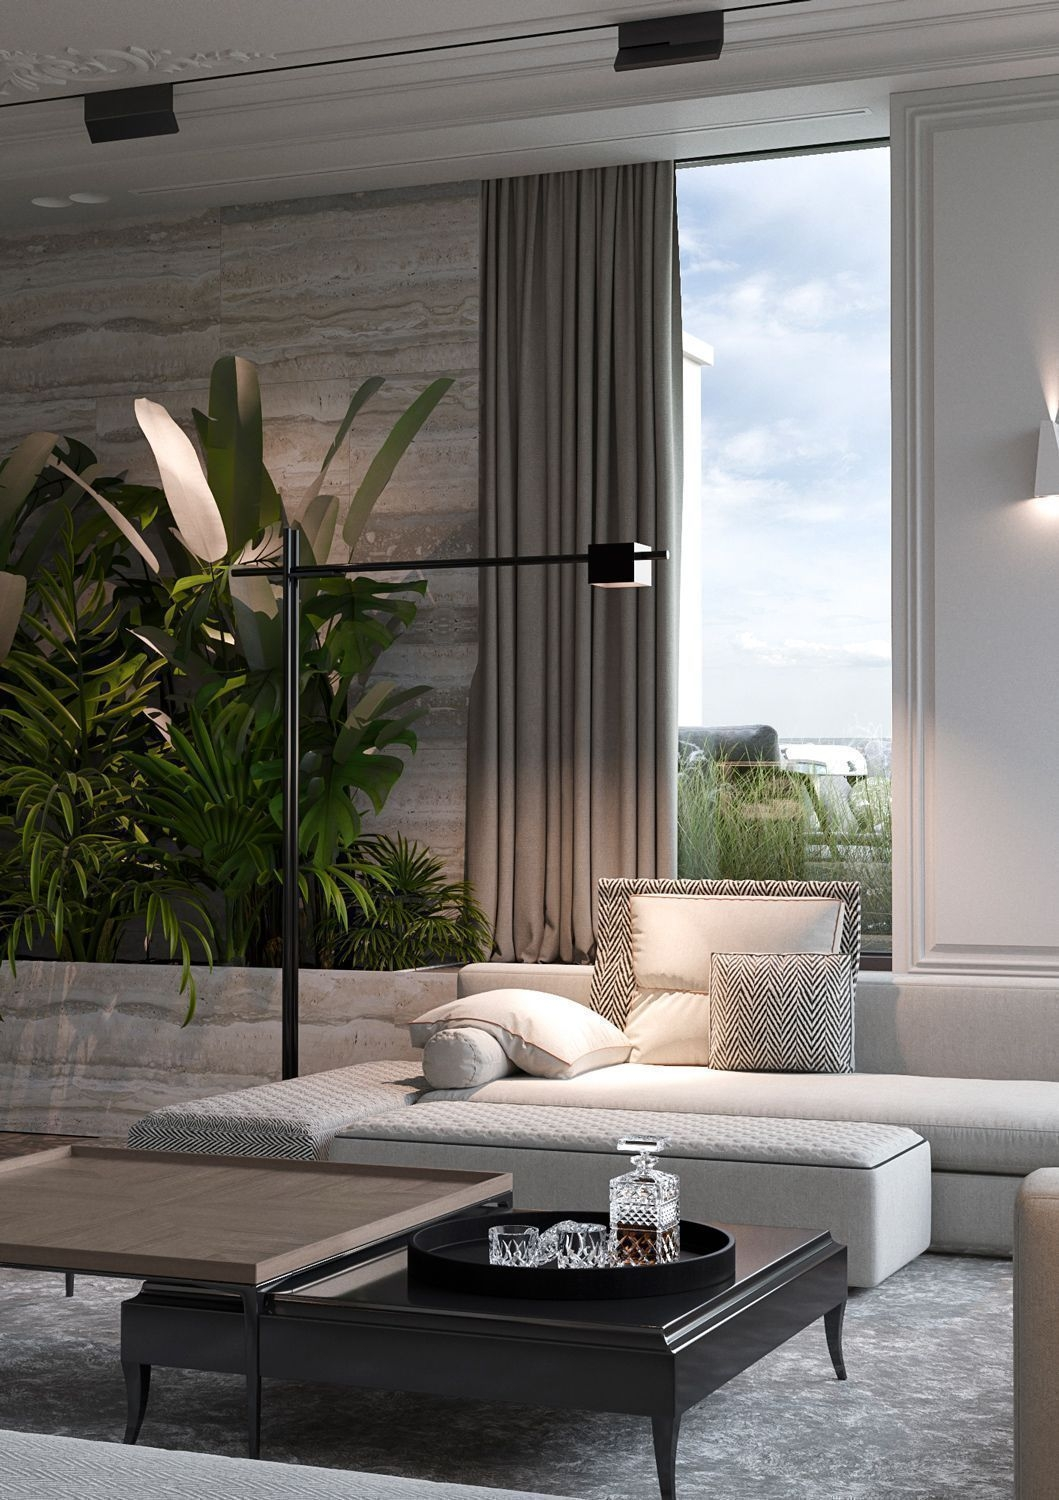 Beaut Contemporary Home Decor On Breathtaking Running Out Of Ideas Delightfull Got You Discover the Best On Contemporary Home Decor